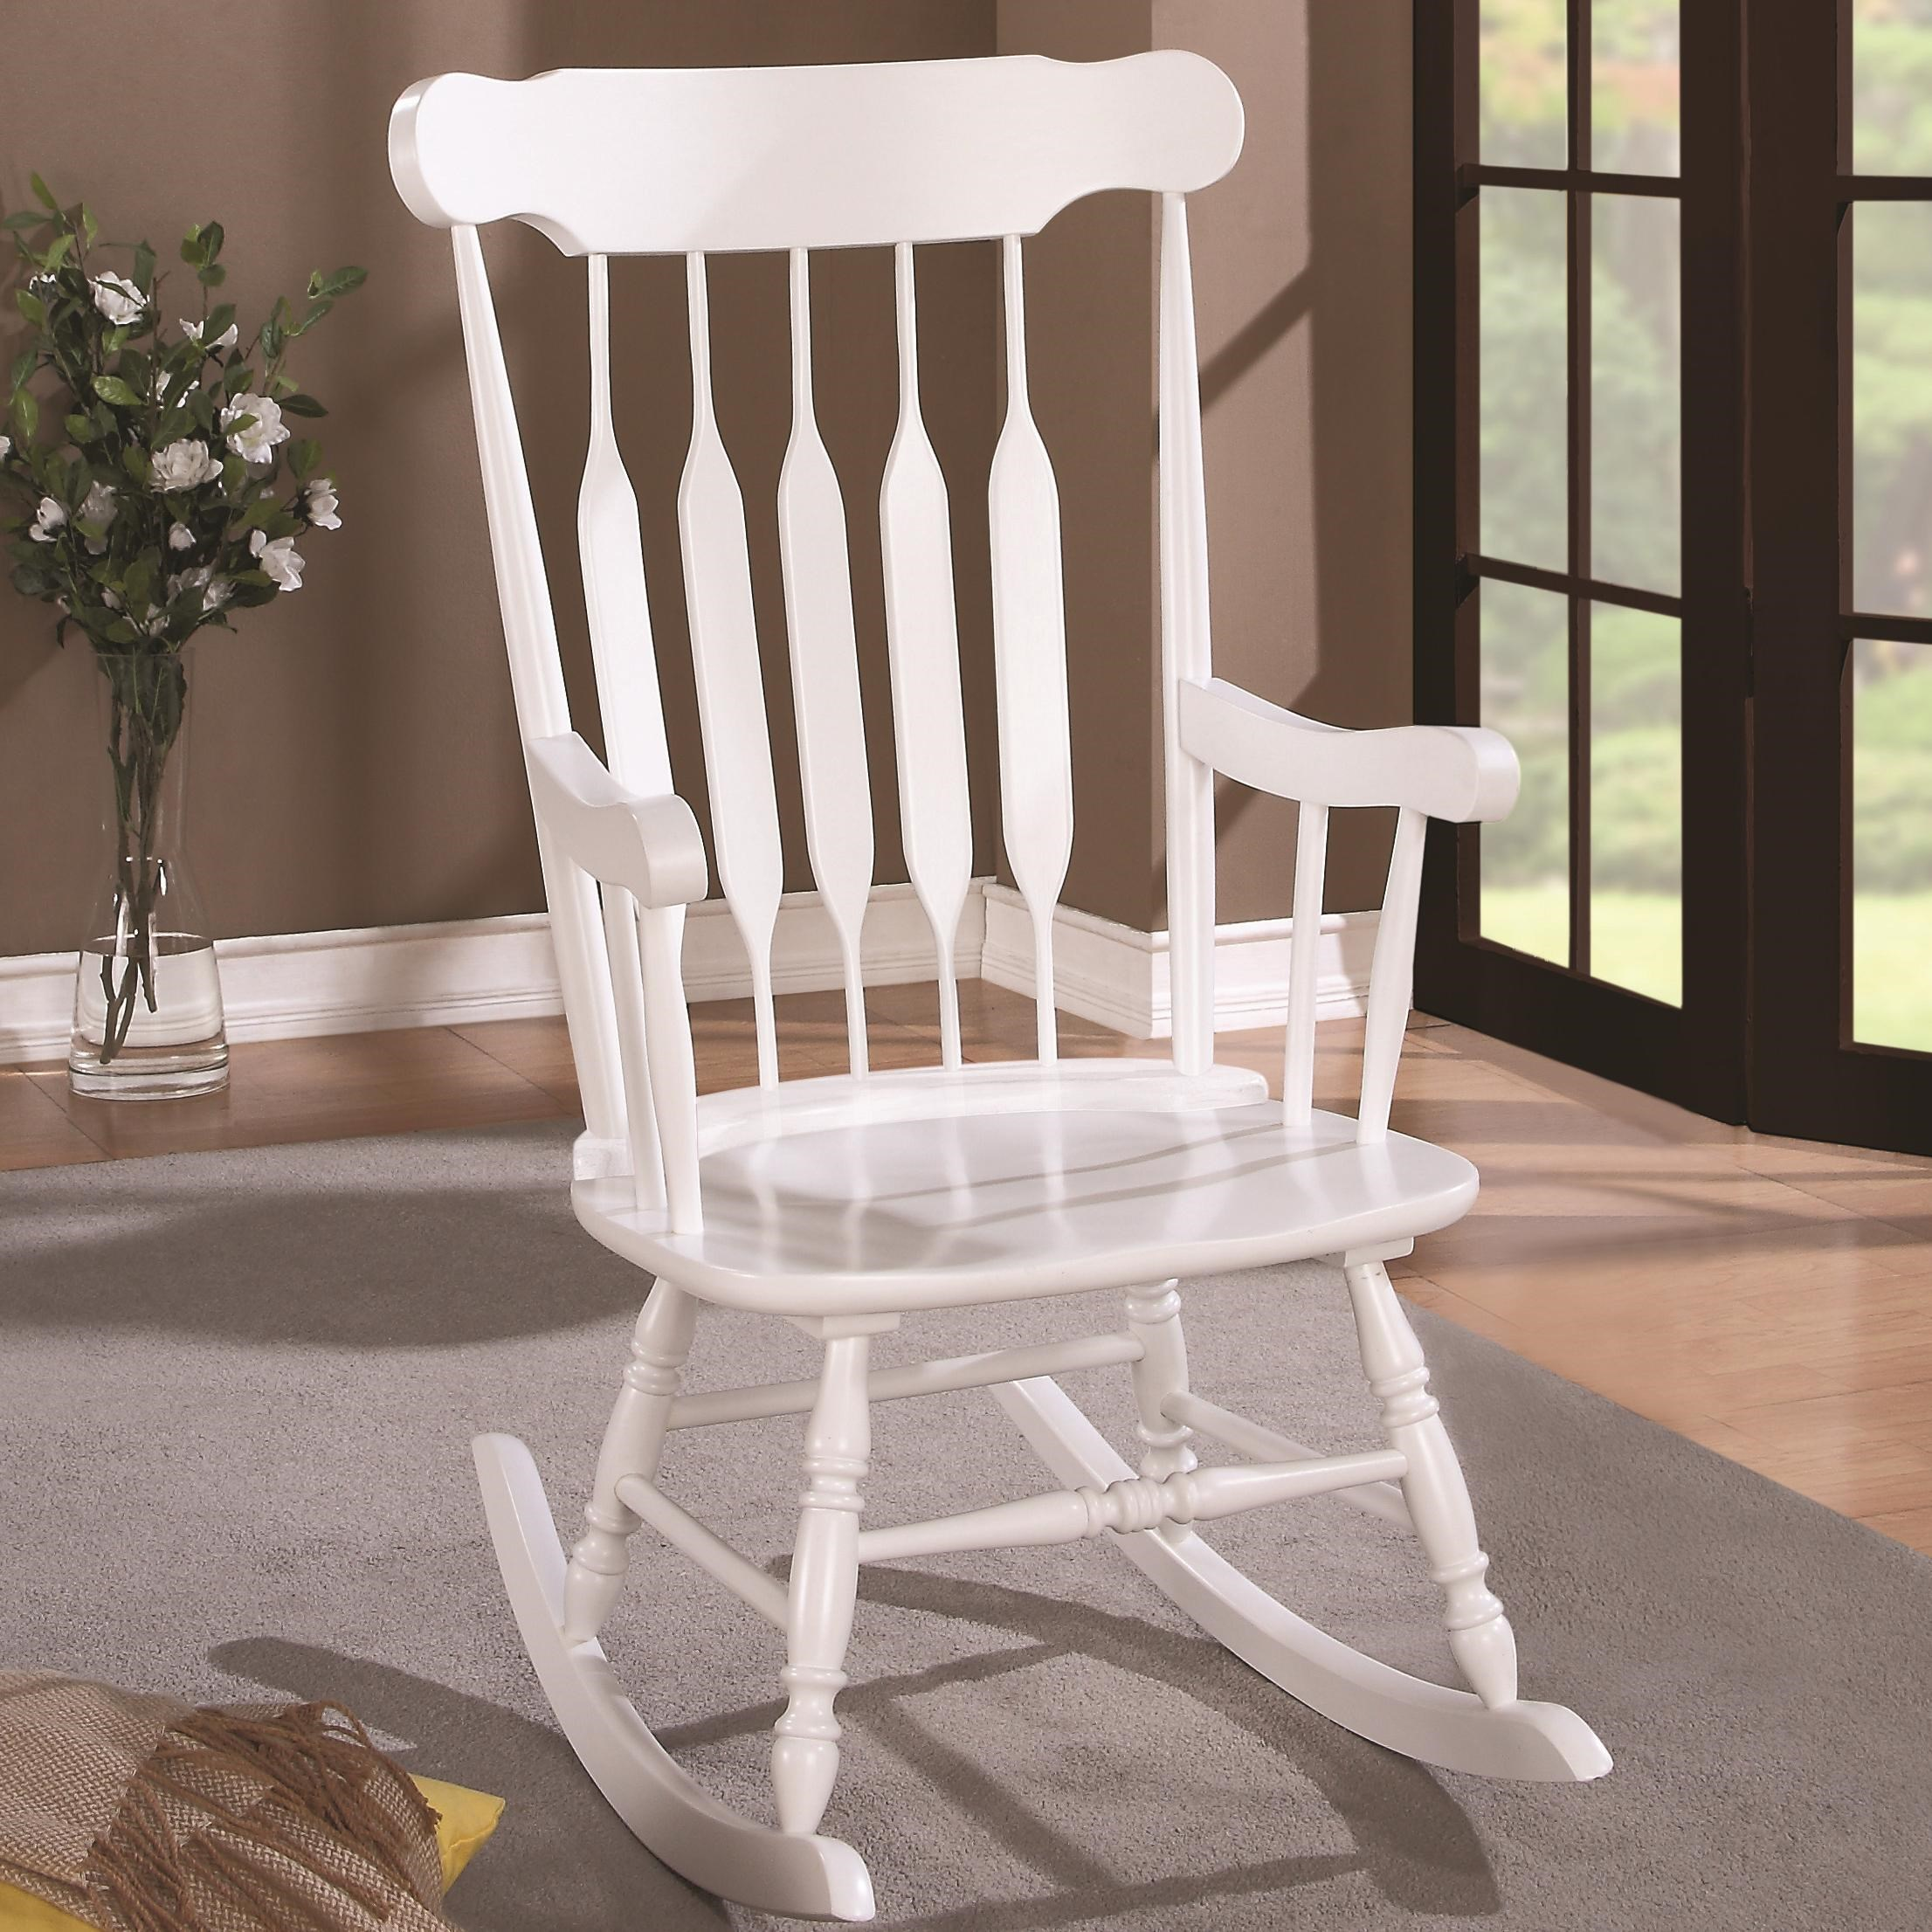 Wood Rocking Chair with White Finish and Slatted Back